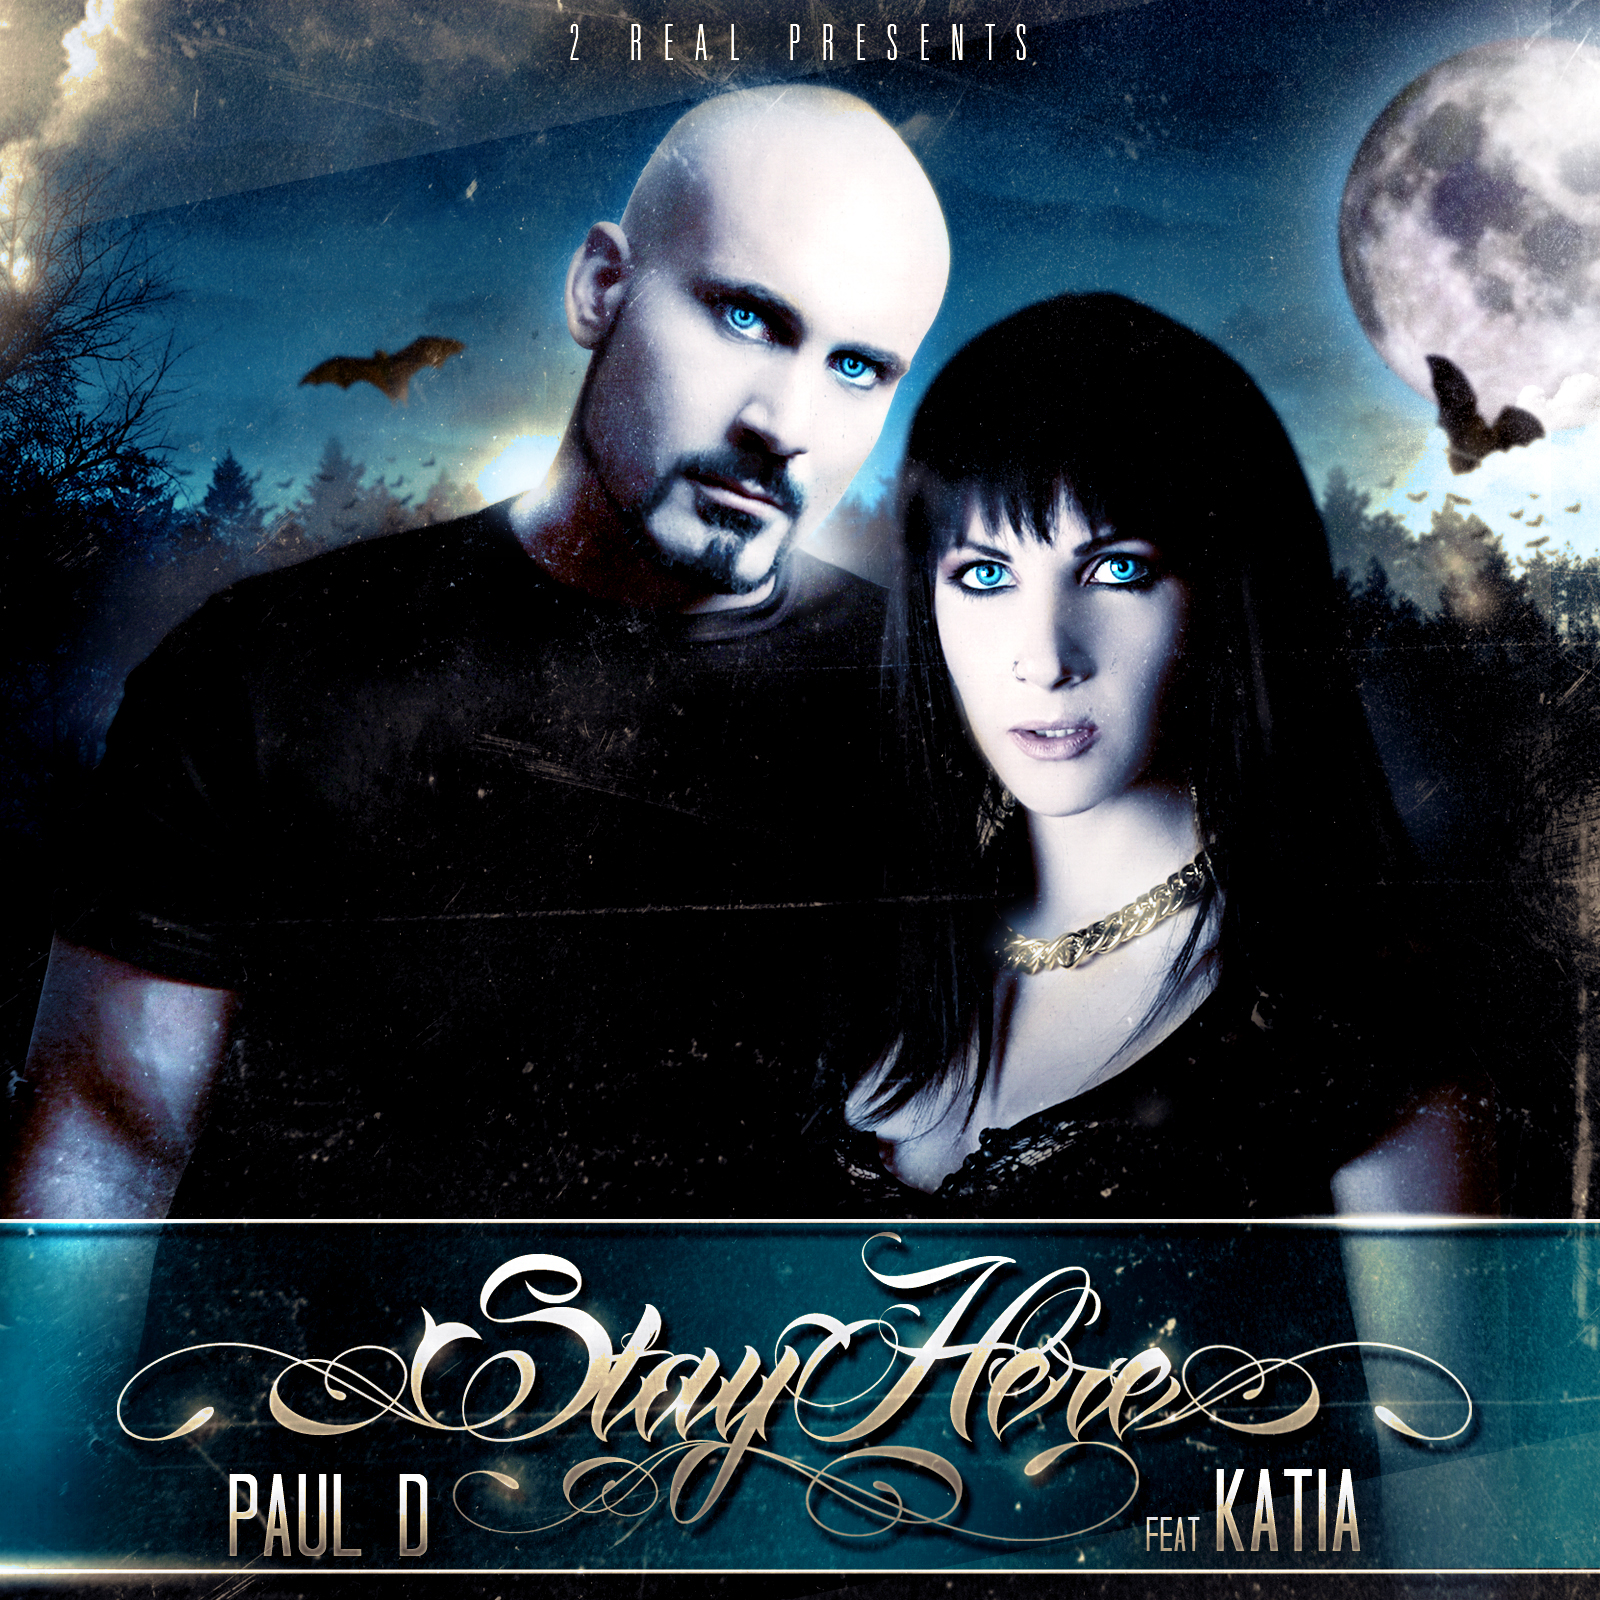 Stay here by Paul D feat Katia